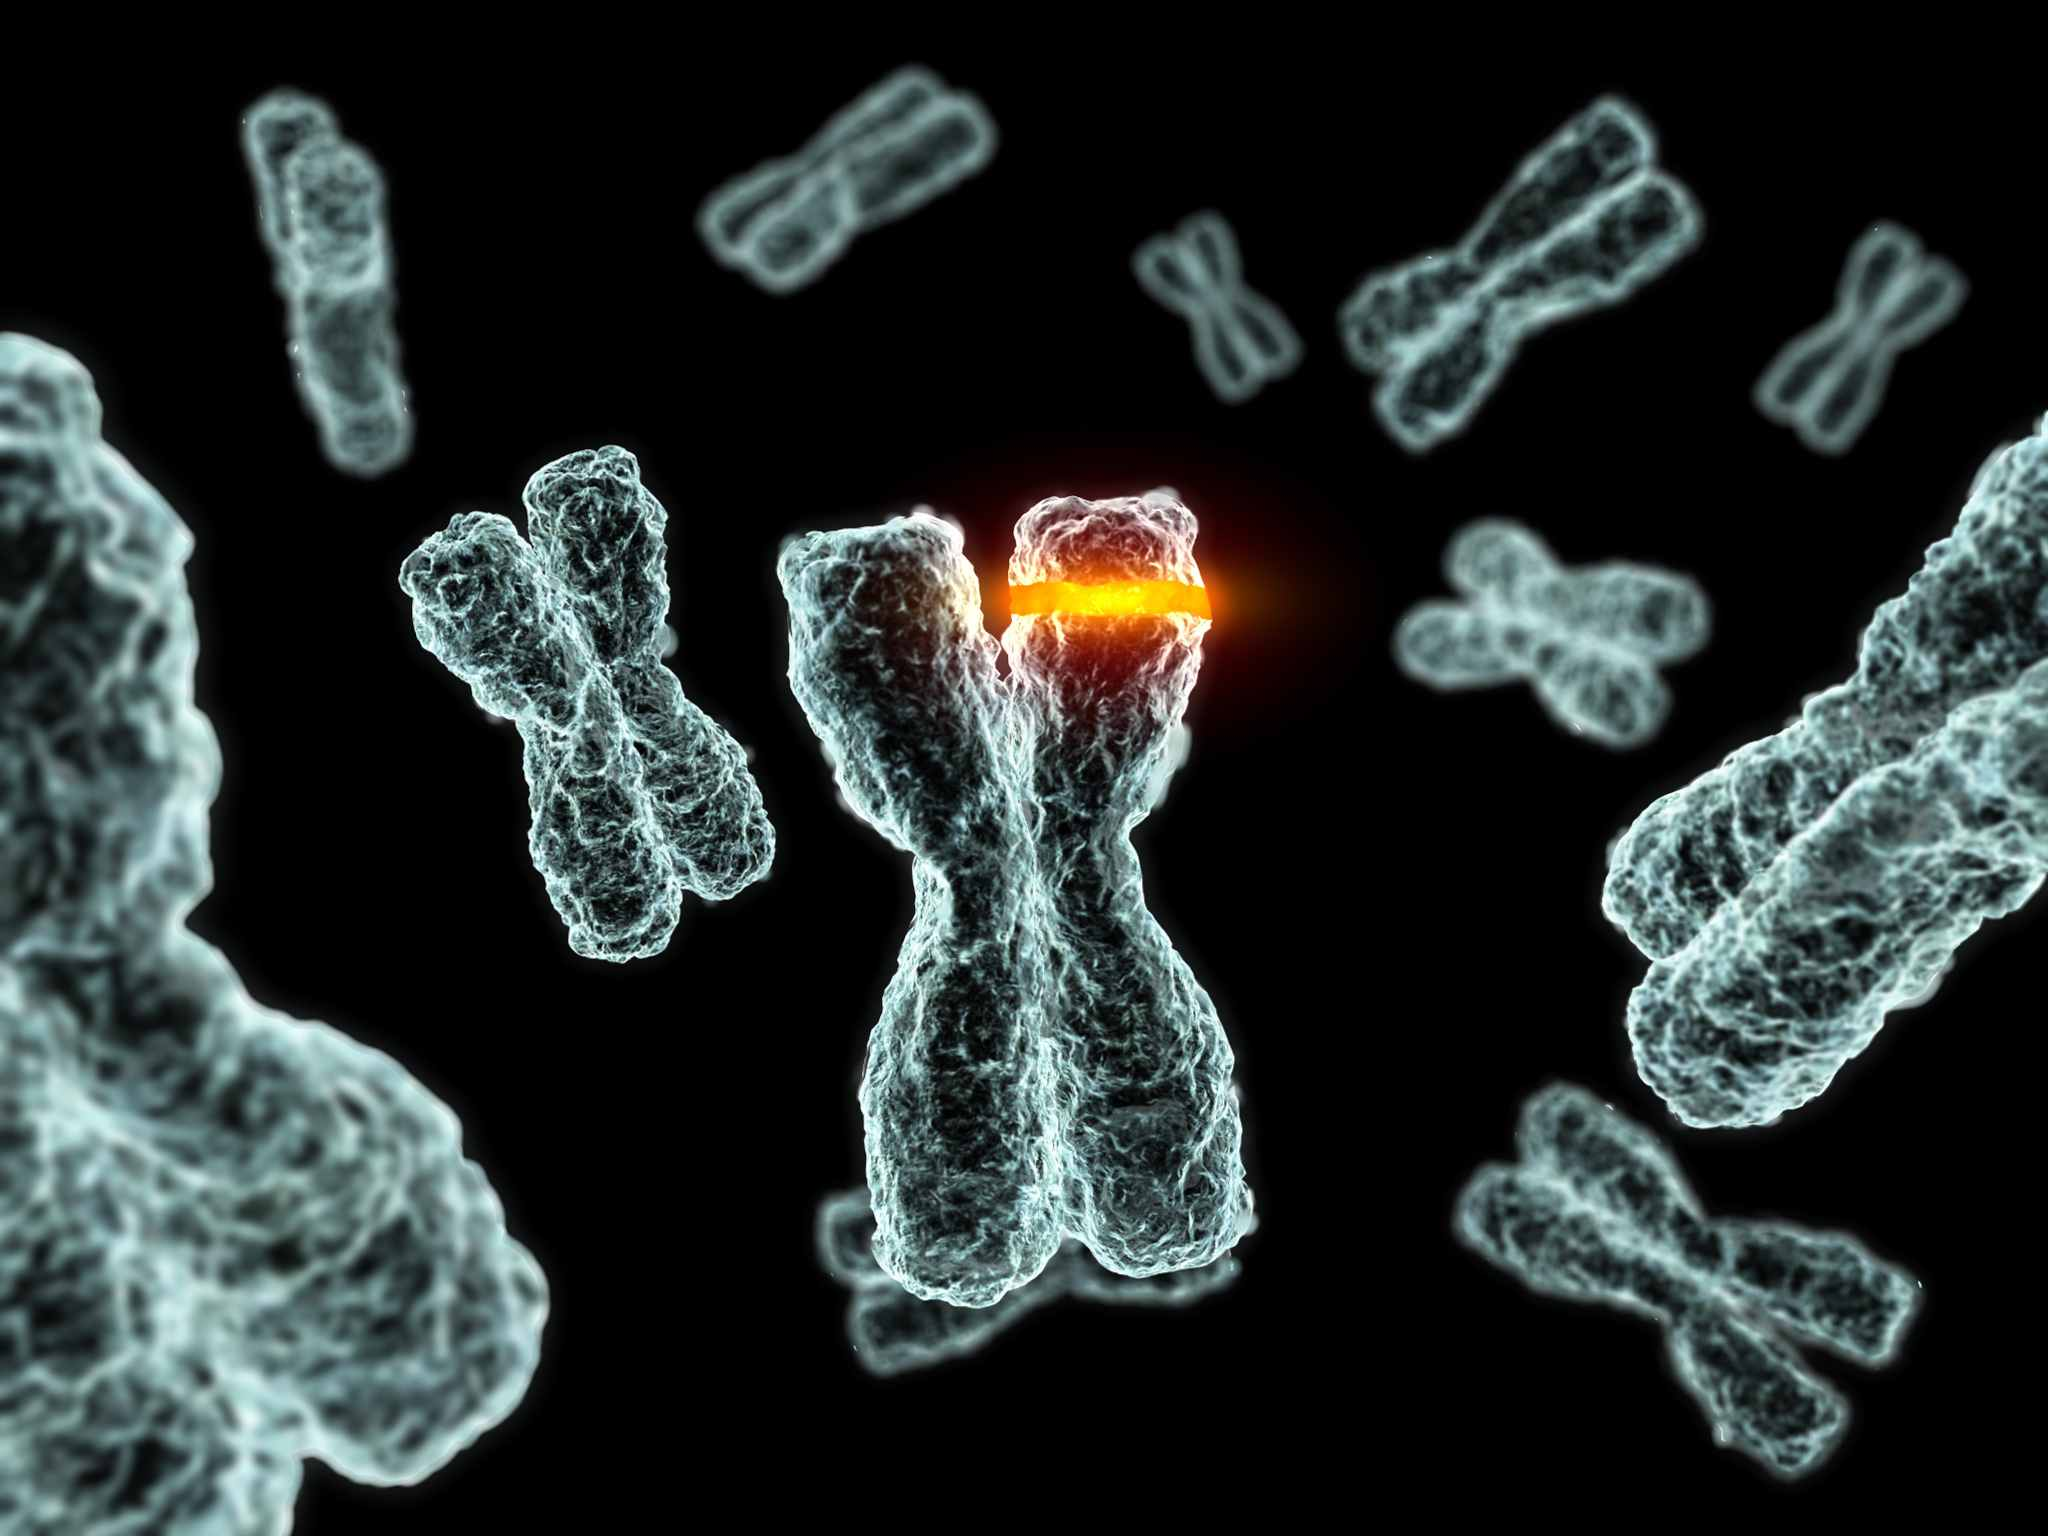 Translocation happens when pieces attach to different chromosomes